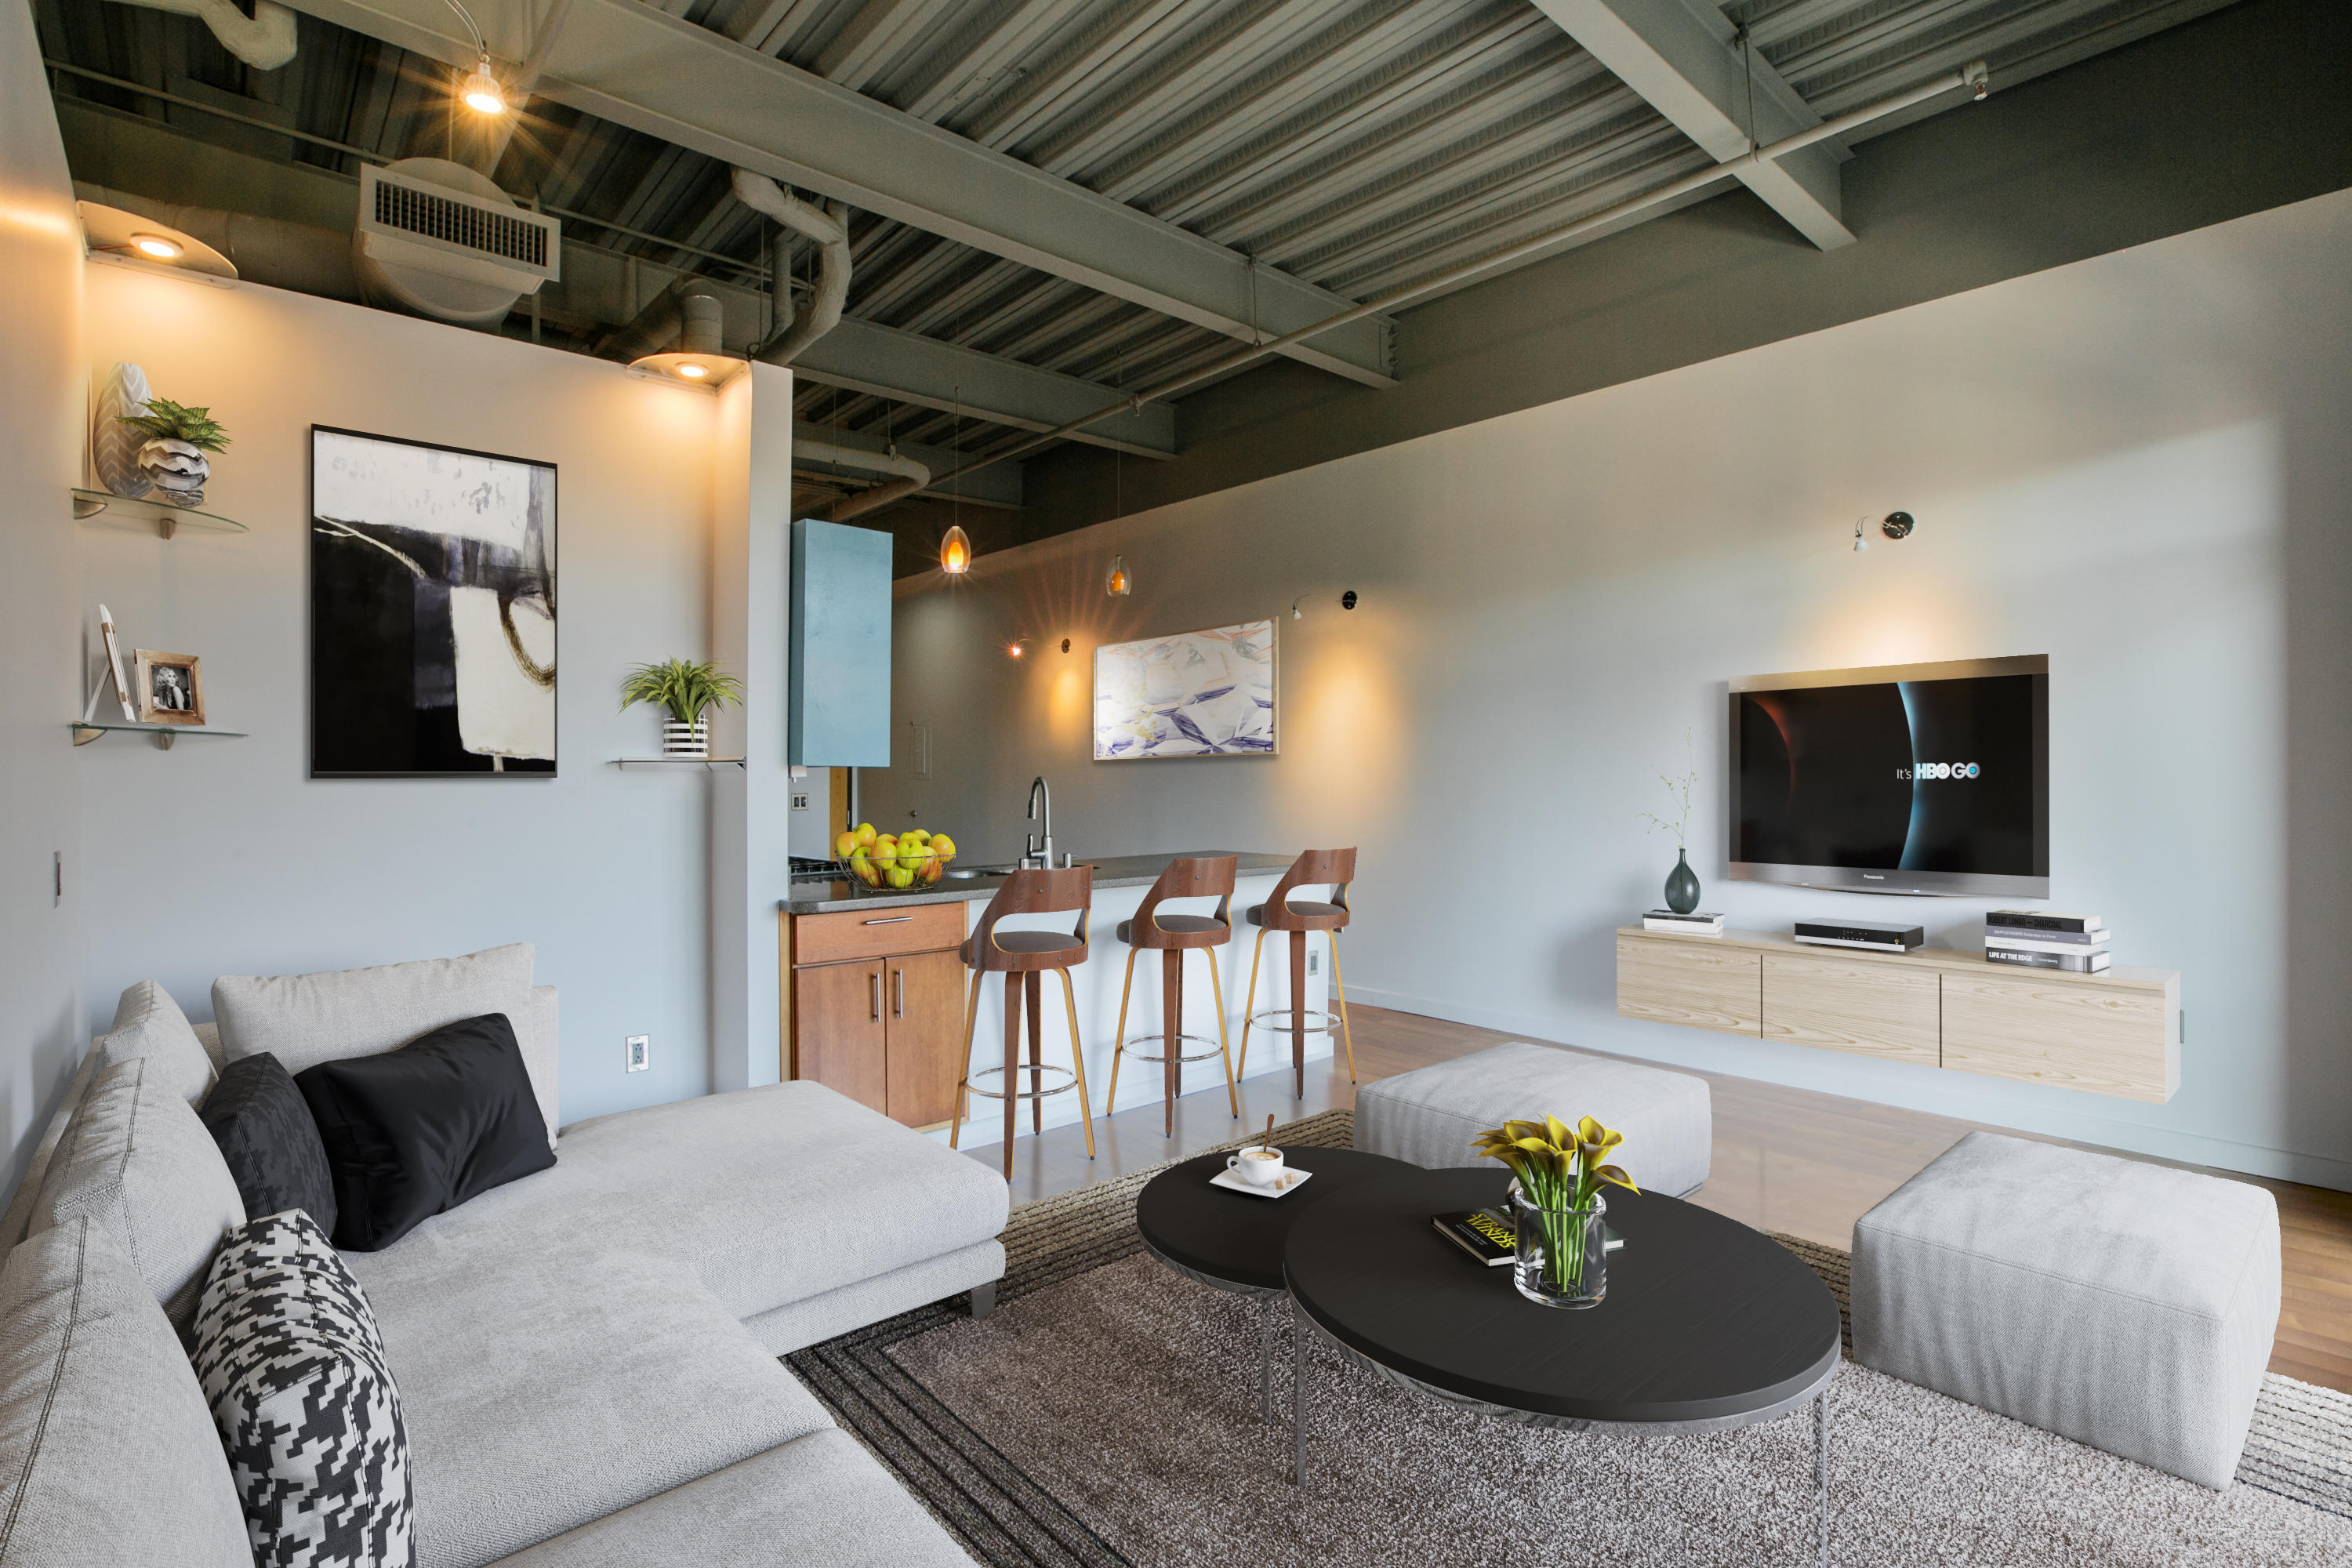 This 2 bedroom, 2 Bath Loft Condo is located in the heart of Downtown Albuquerque. Steps away from the Alvarado Transportation Complex, including the ART. Close to hospitals, UNM, & CNM. The Silver Street Market is conveniently located across the street. Very high cielings contribute to this lofts open and airy feel. Blackout shades on all windows for privacy. The master bedroom chandelier adds a bit of romance and warmth to the space. California Closets has created a master bedroom walk in closet with ample storage. The washer/dryer is also conveniently located in the master closet. A towel warmer was added to the master bath for those chilly mornings.  Please schedule your tour of this must see condo.